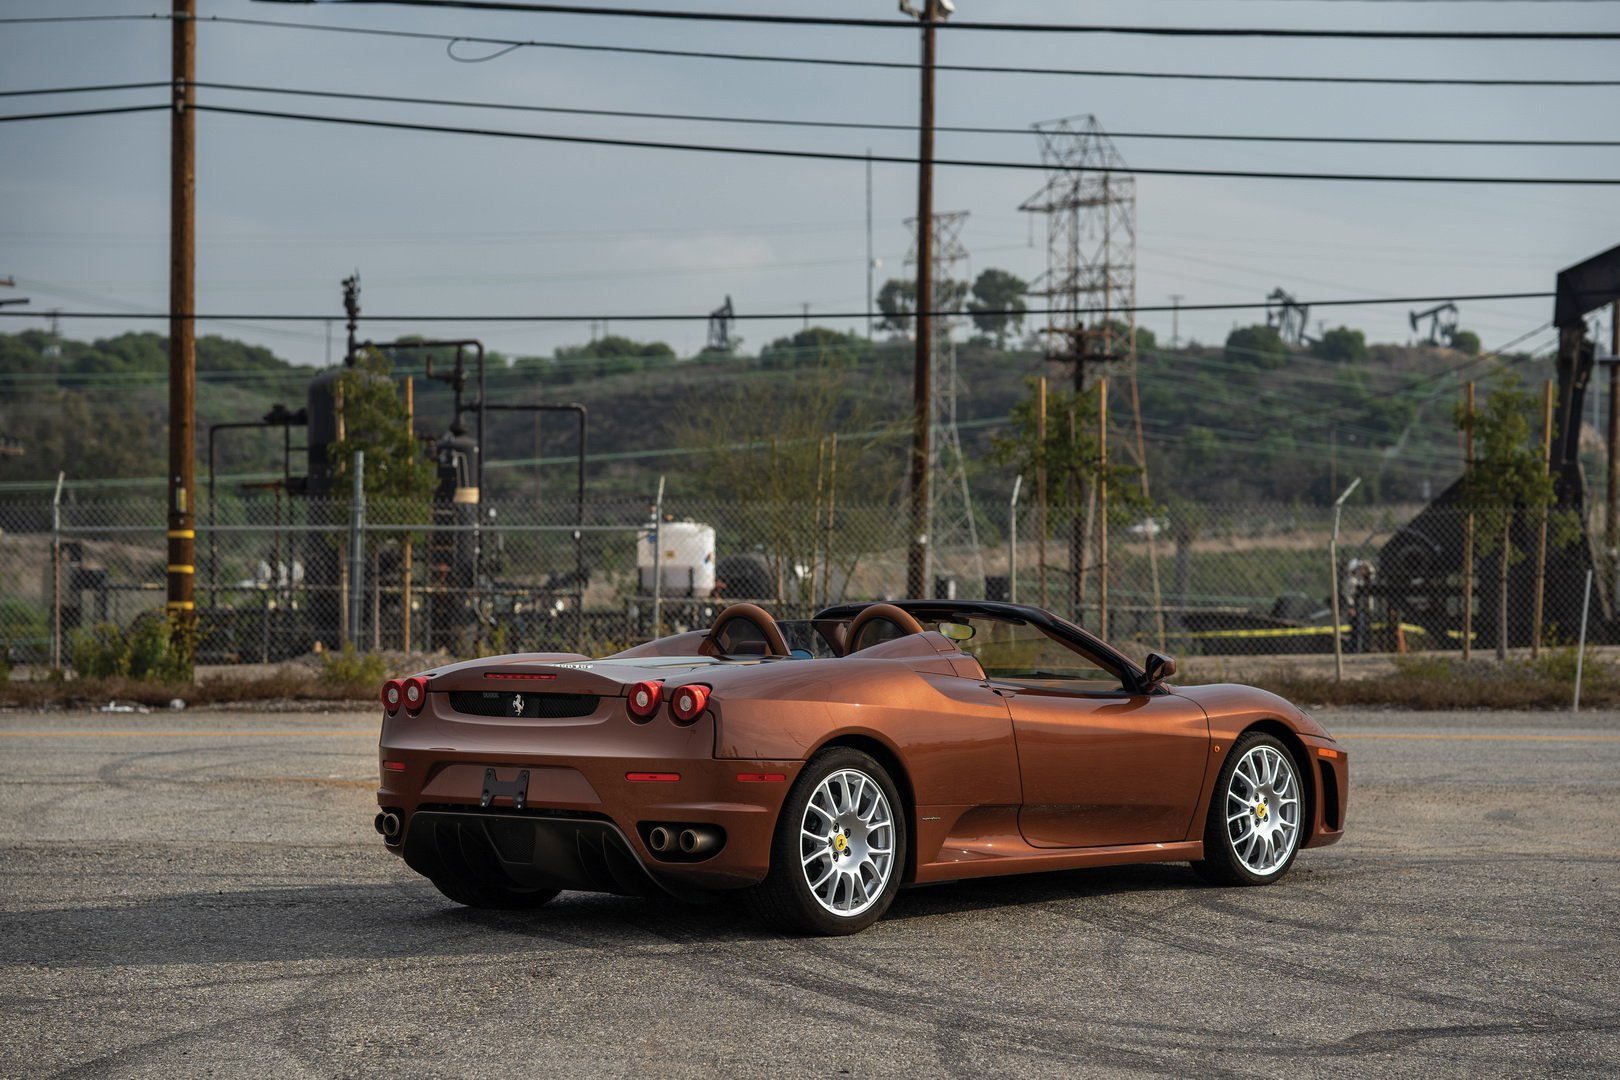 Ferrari F430 Spider in brown Classic Marrone color (7)